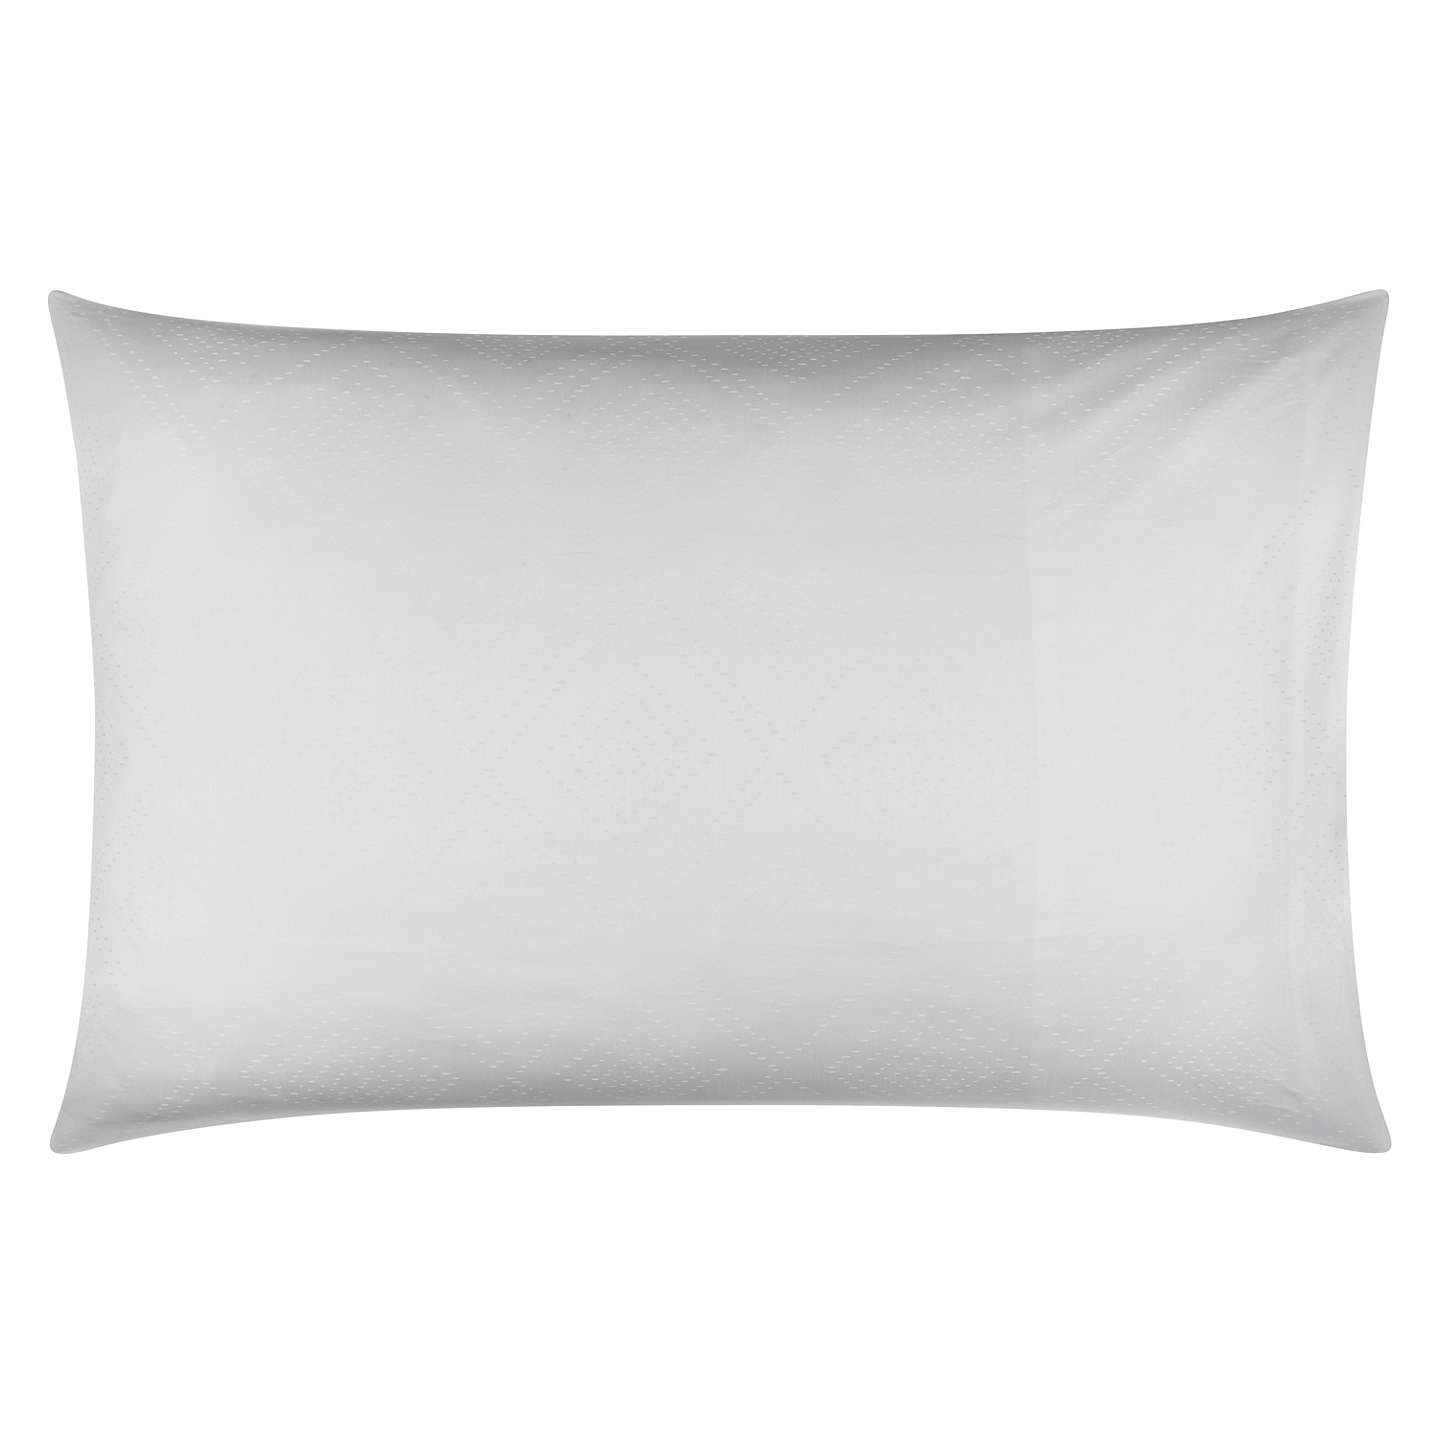 BuyJohn Lewis Hamilton Jacquard 1000 Thread Count Cotton Standard Pillowcase, White Online at johnlewis.com